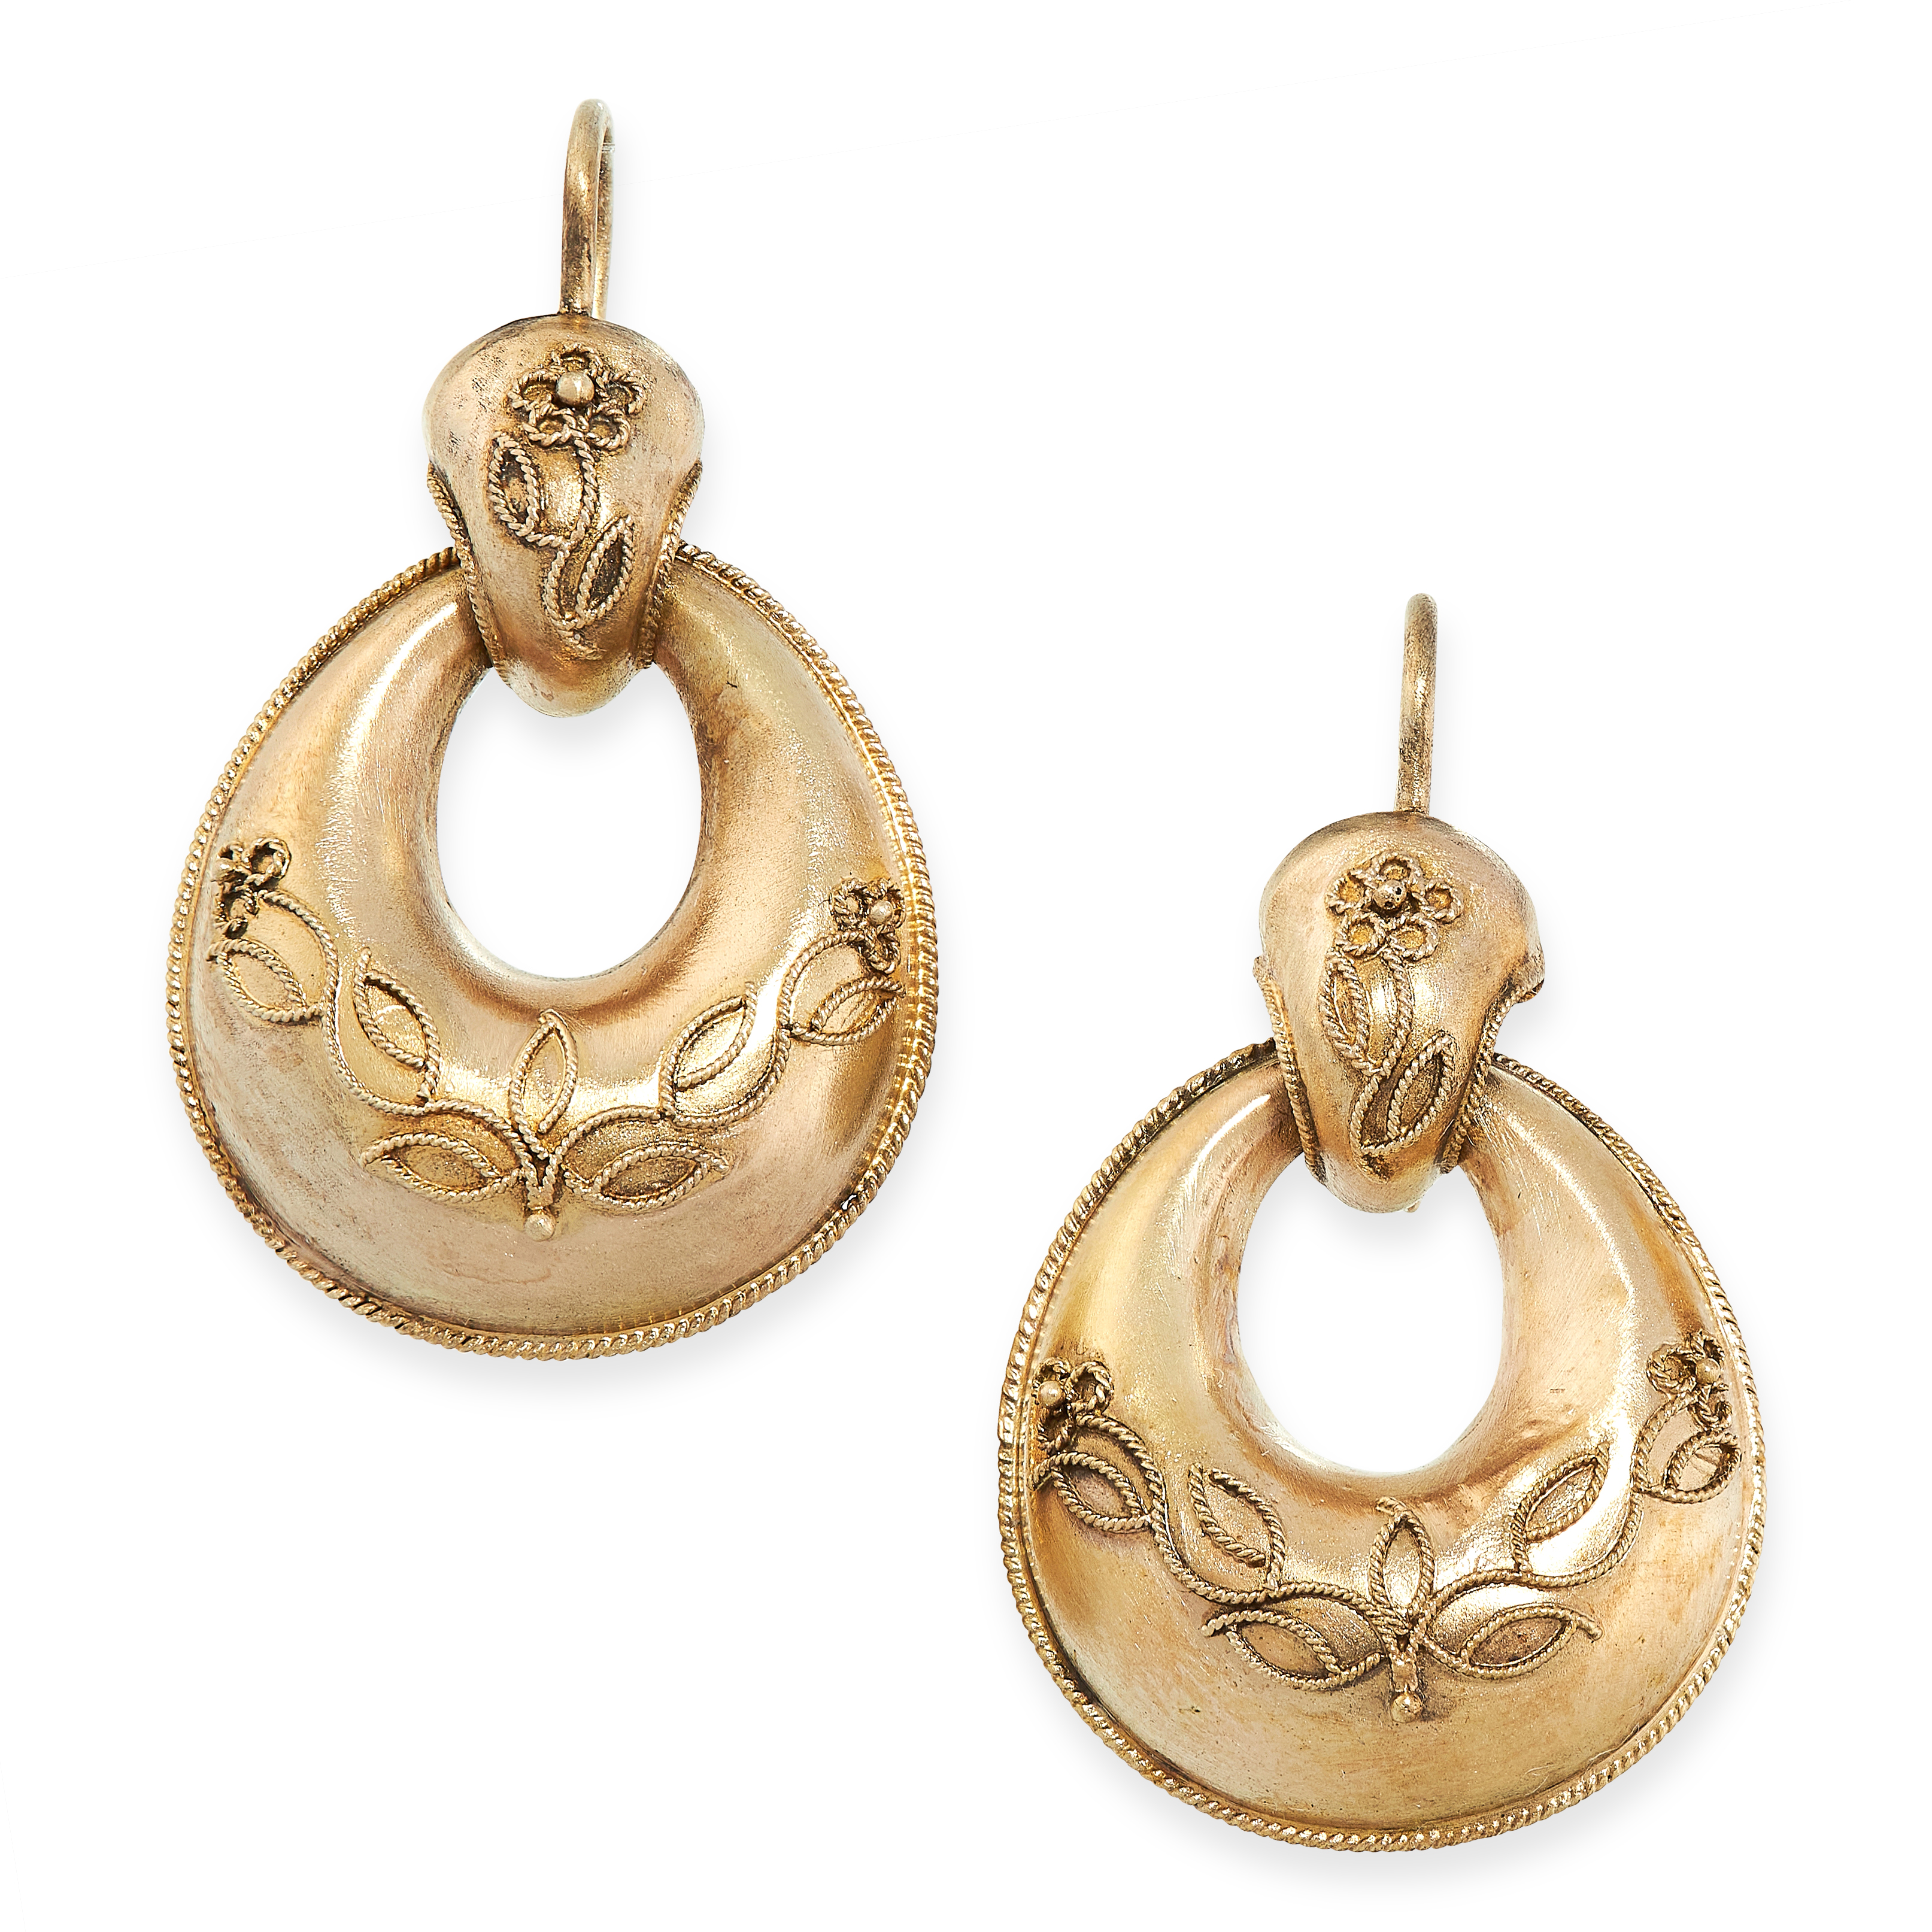 ANTIQUE VICTORIAN EARRINGS in yellow gold, in Etruscan revival form, set with foliate beaded motif